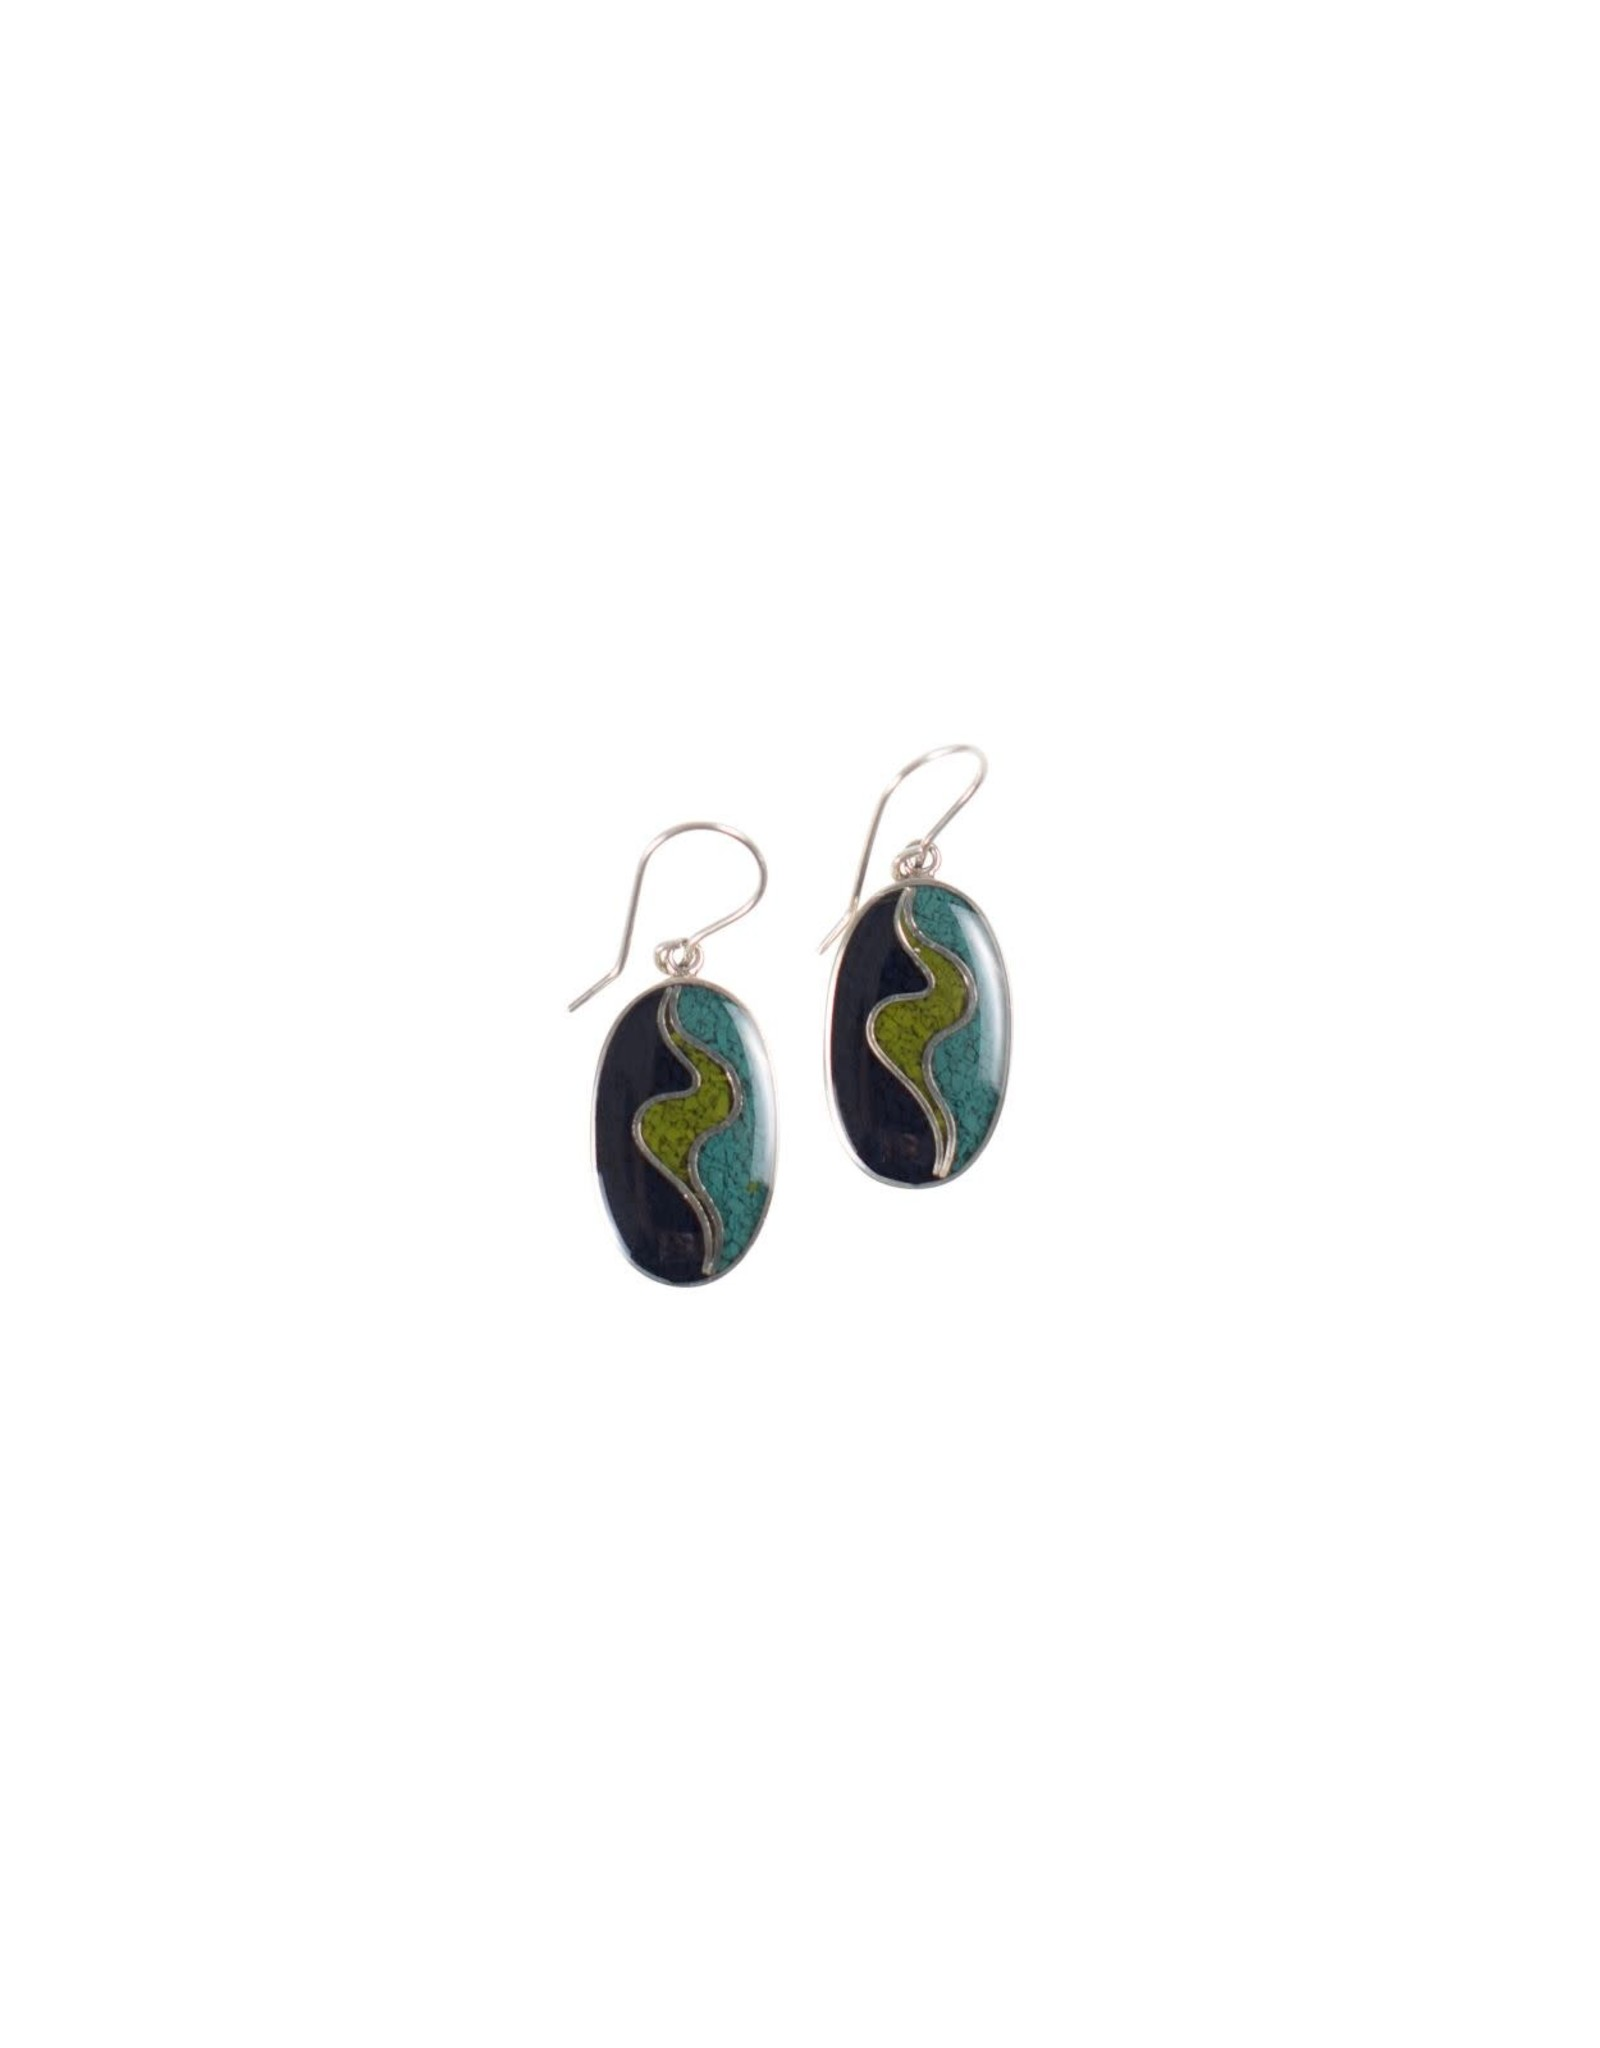 Dyed Resin Chips Earrings, Sterling Hooks, Peru